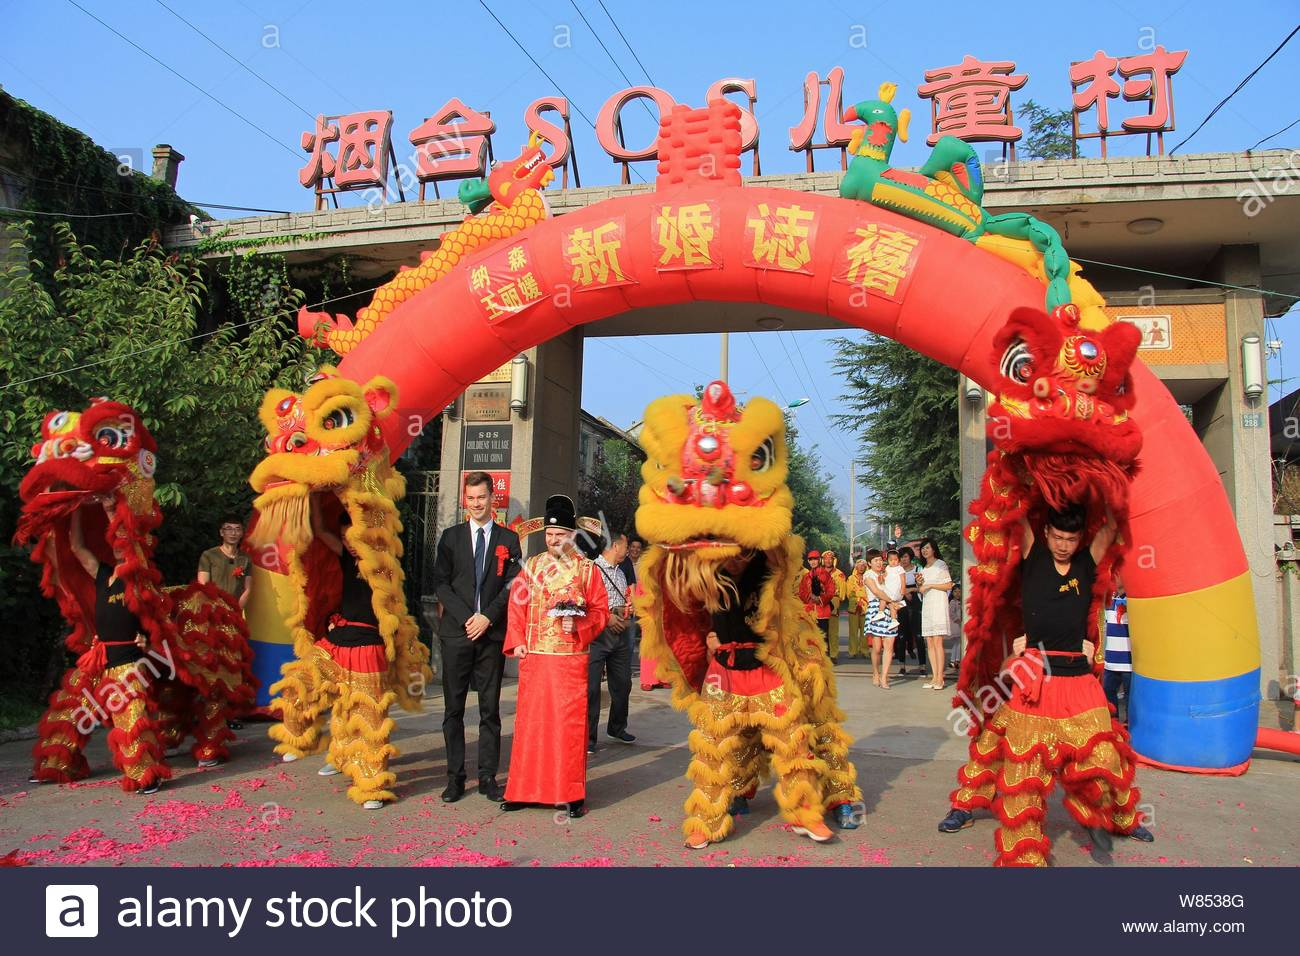 American man Nathan, second left, dressed in traditional Chinese wedding costume, poses with his groomsman during his wedding ceremony at the gate of Stock Photo